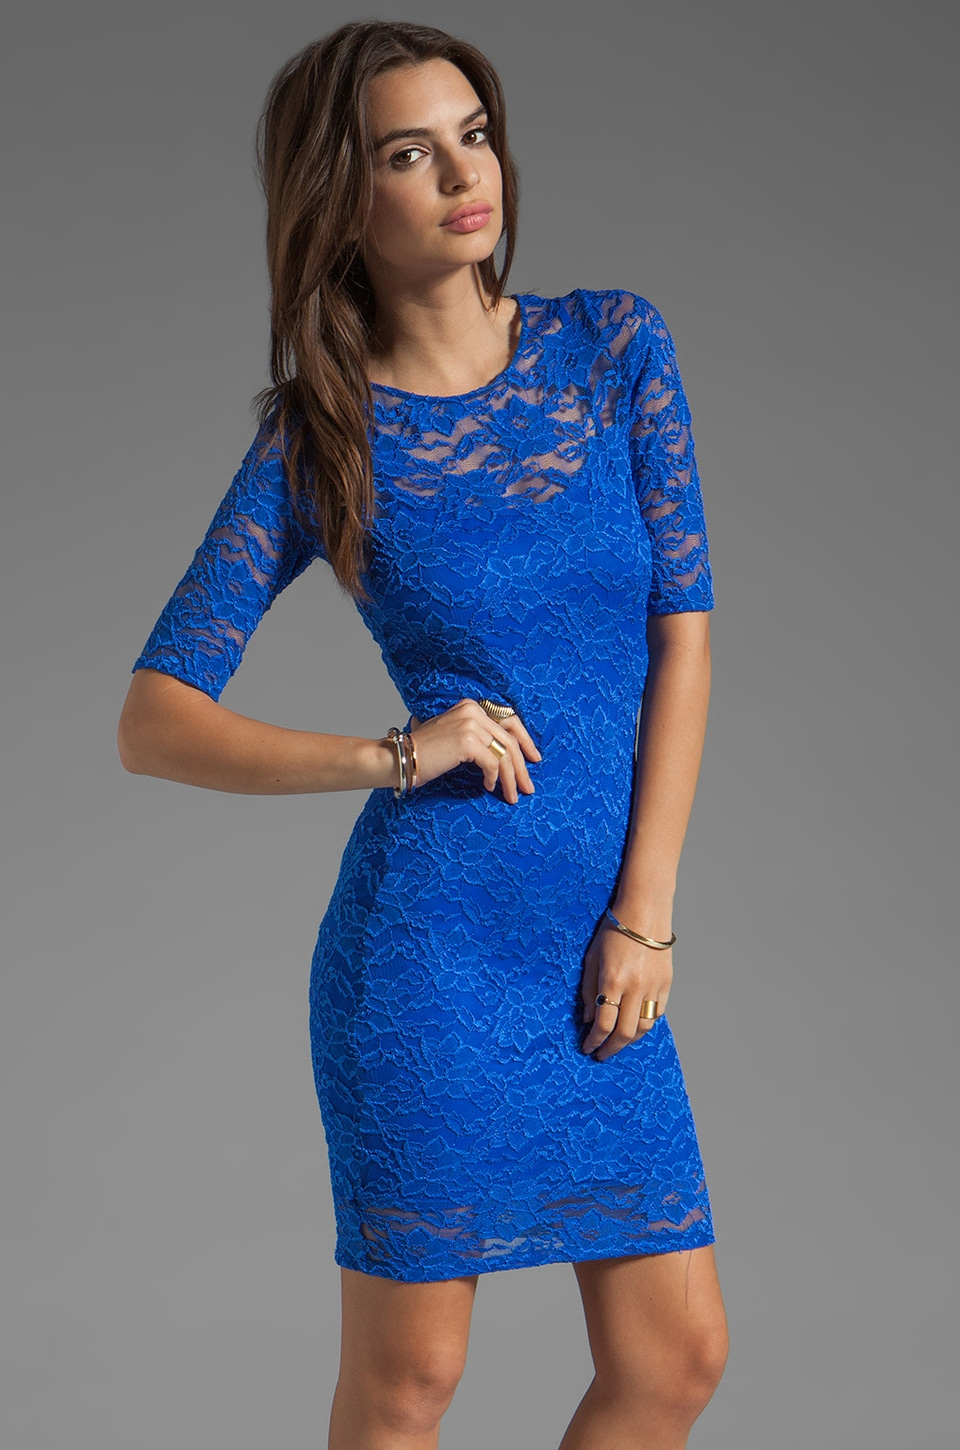 Donna Mizani Passion Lace Half Sleeve Dress in Cobalt